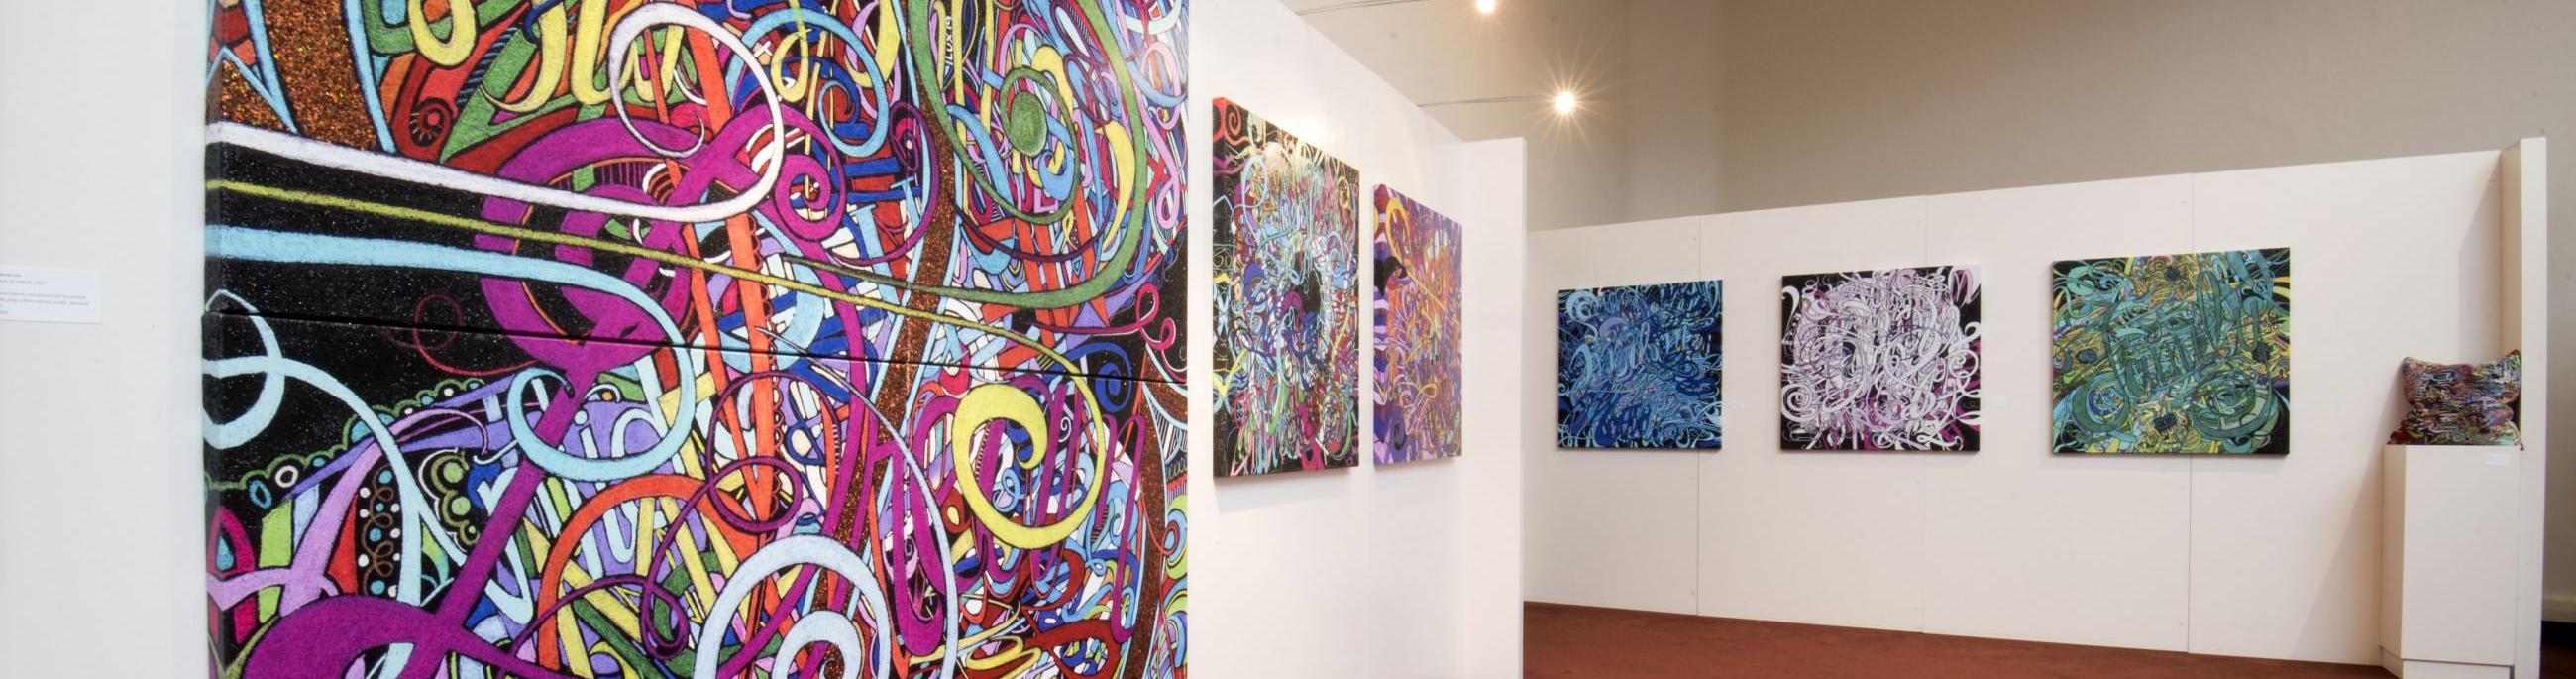 The Gallery at CCA has rotating exhibitions throughout the year